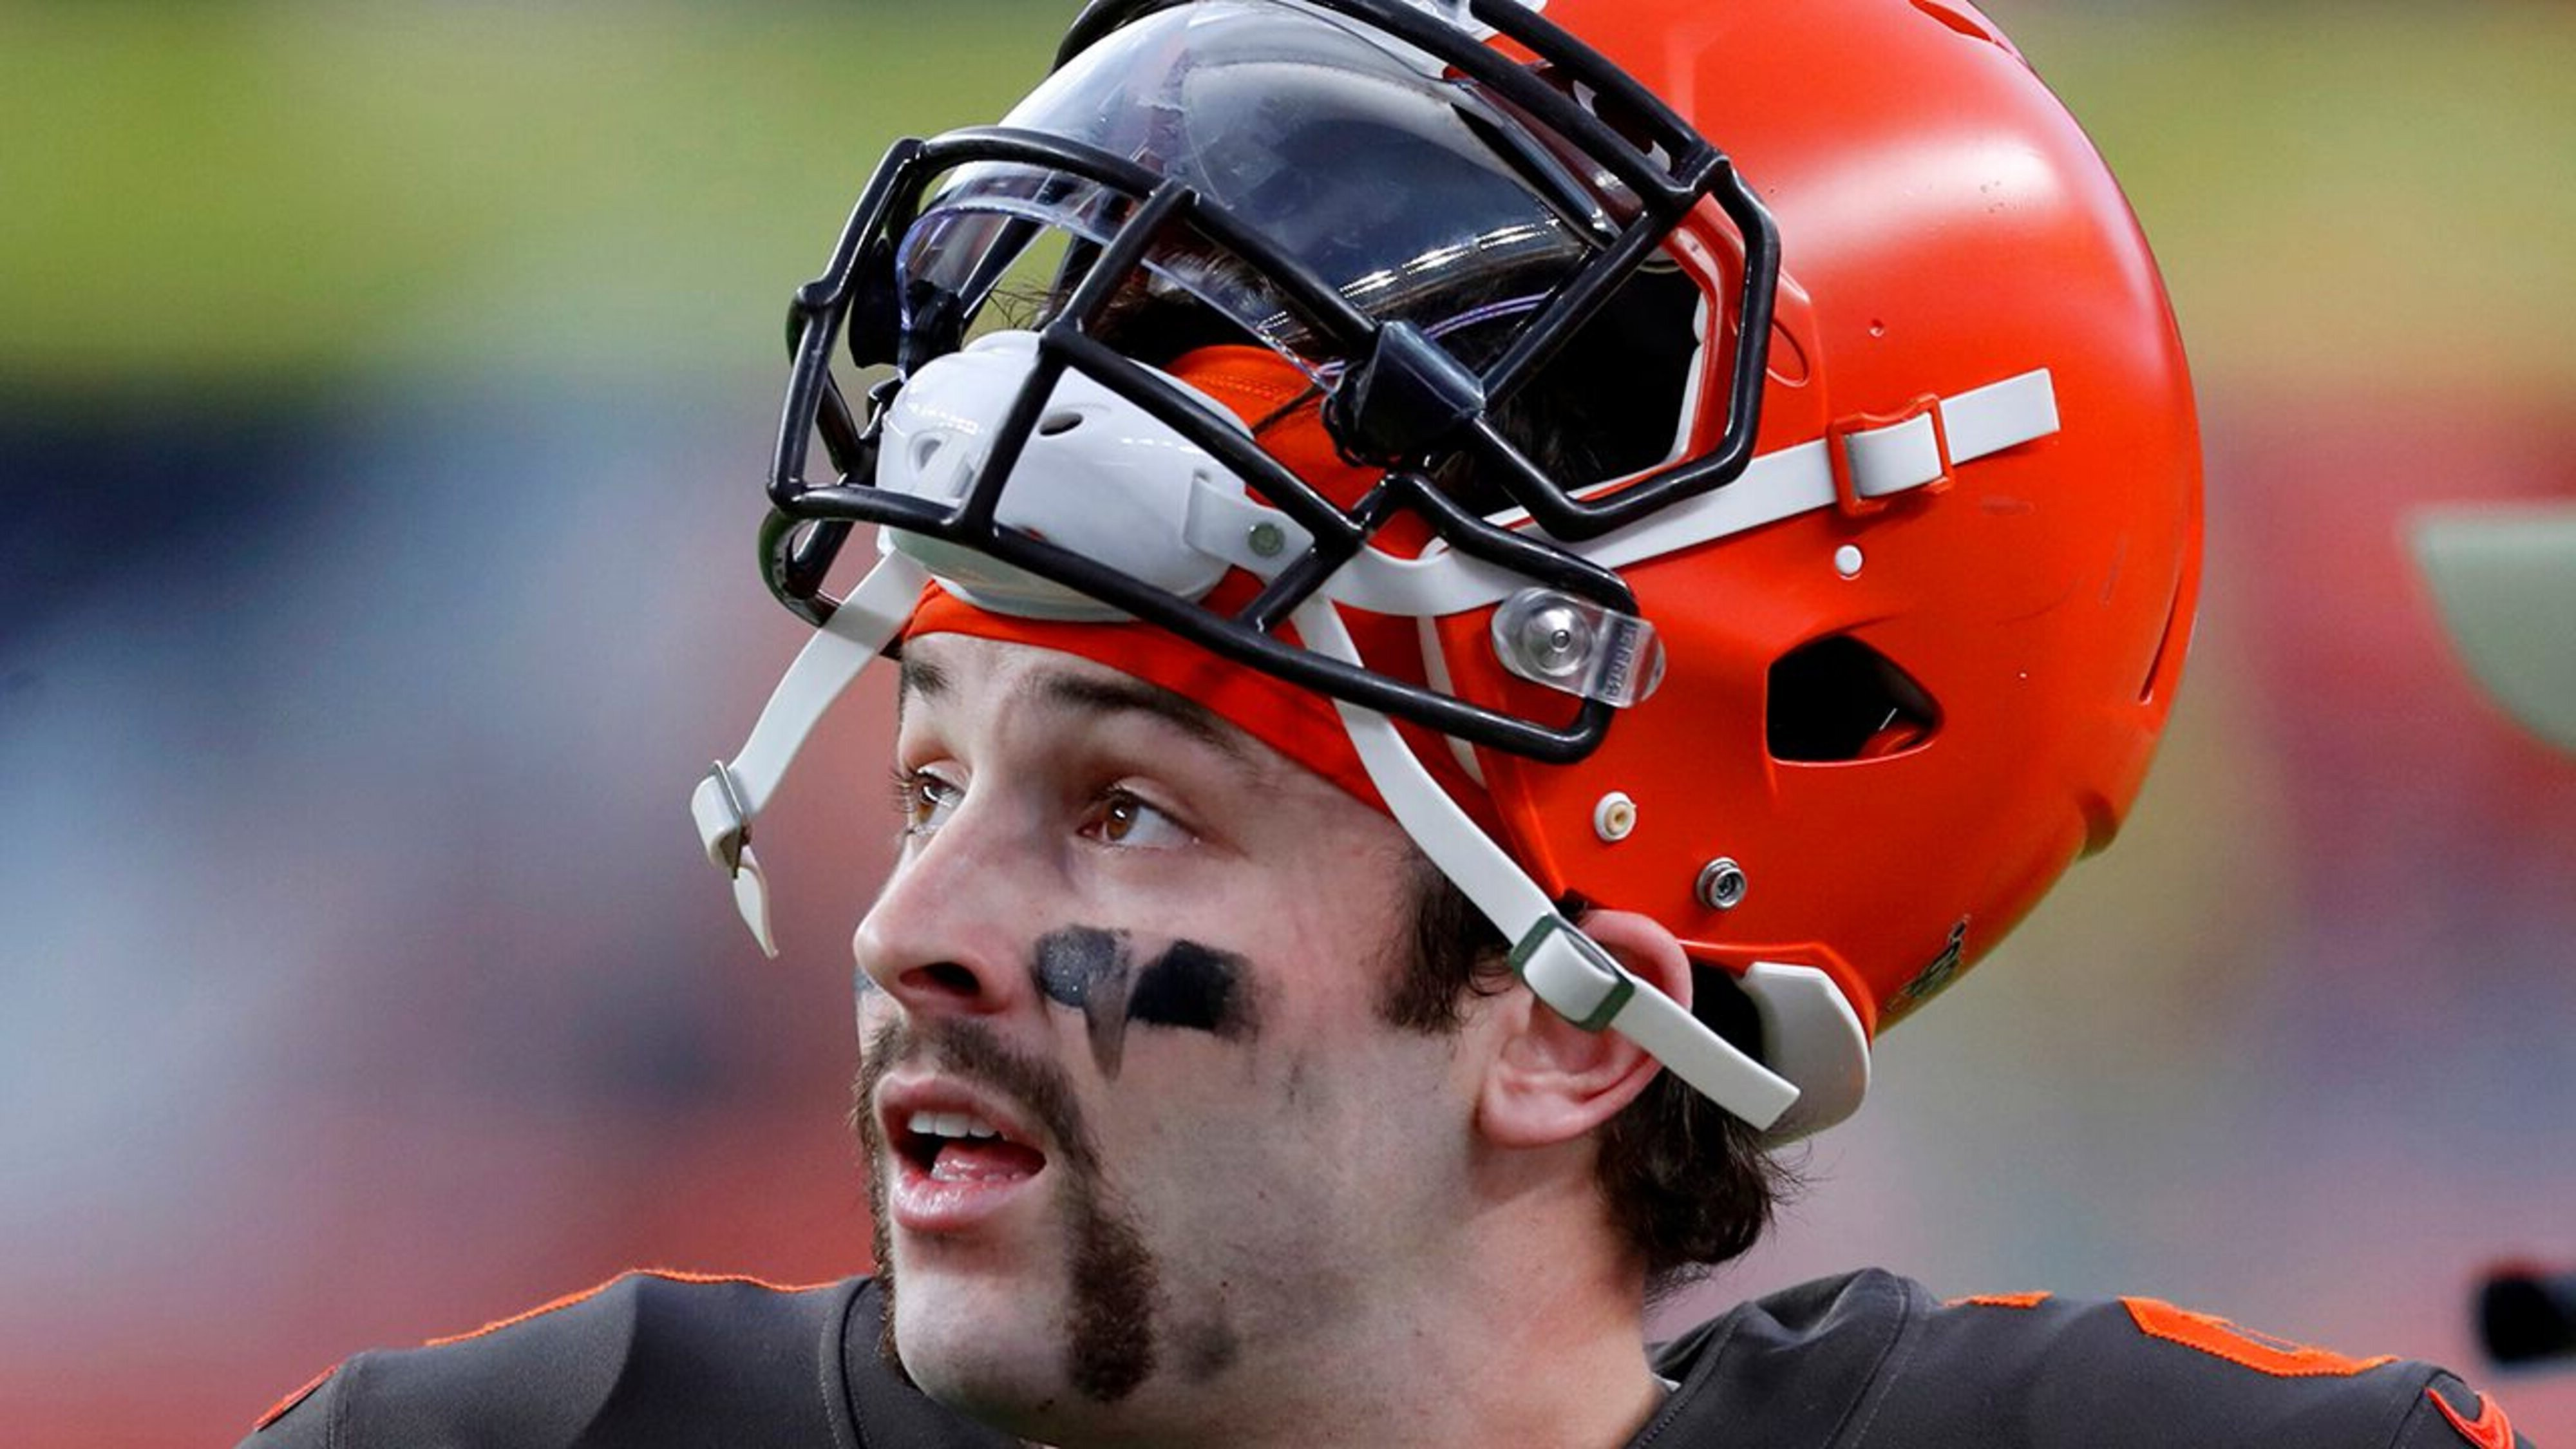 Handlebar mustache in the style of Baker Mayfield.